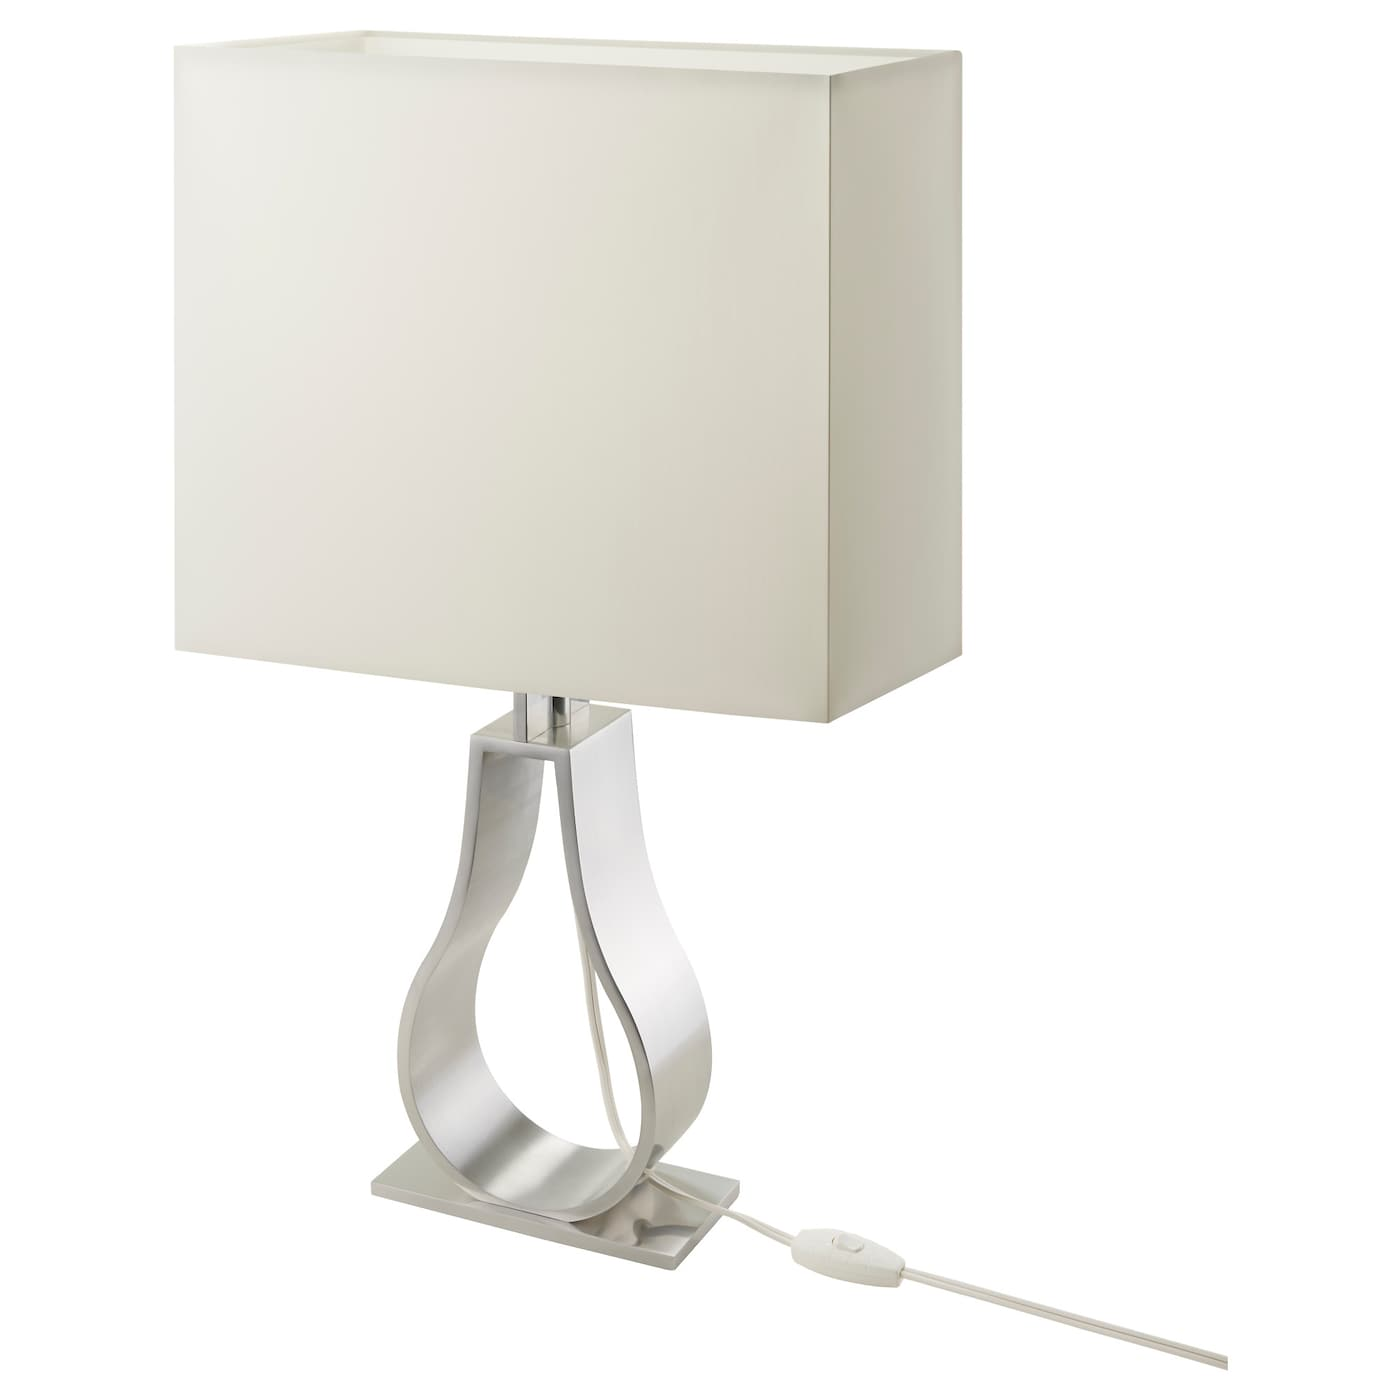 Klabb lampe de table blanc cass nickel 60 cm ikea for Lampe de table rona